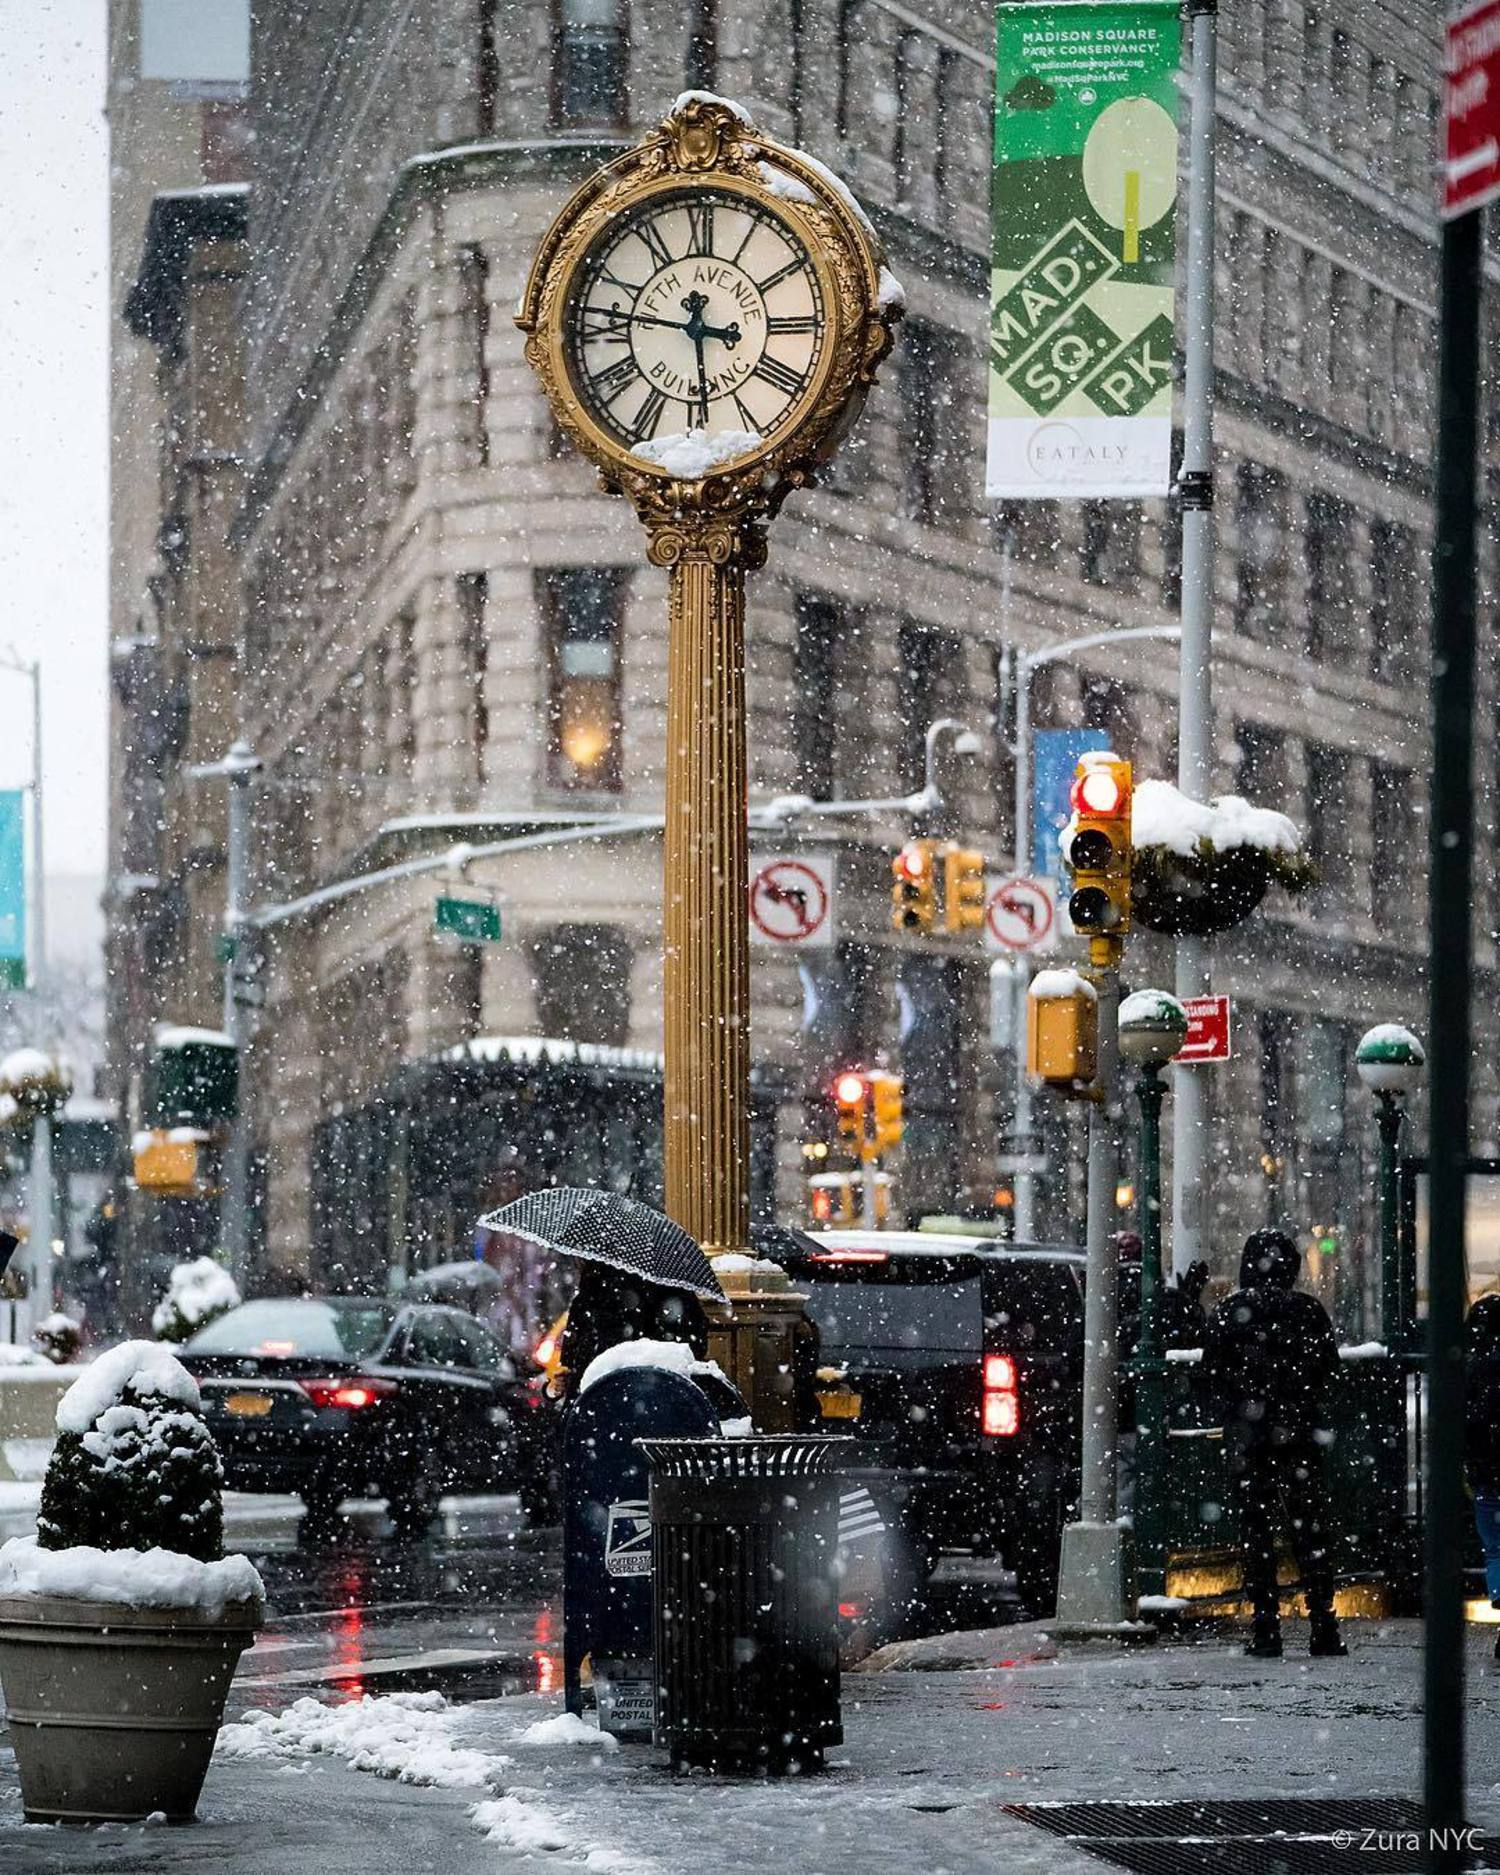 Flatiron District during the snowstorm